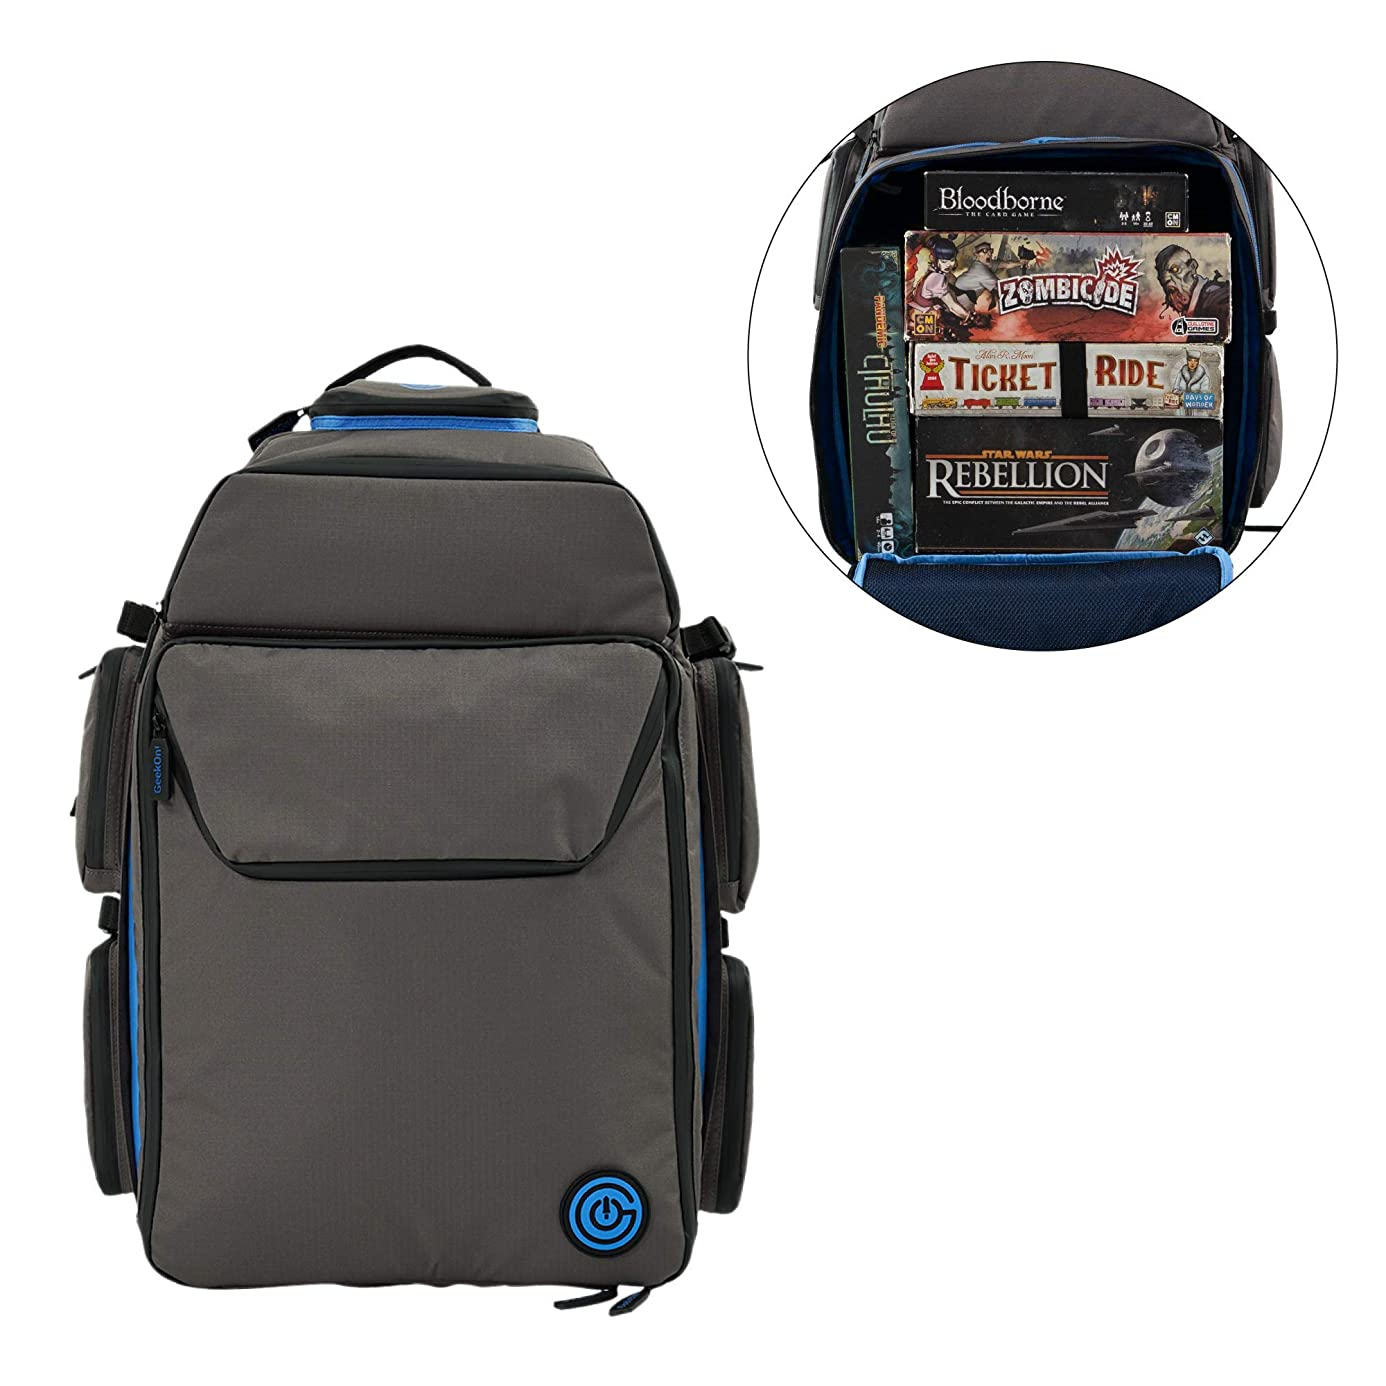 Ultimate Boardgame Backpack - The Smartest Way to Carry Your Games - Expandable Multi-Functional Backpack - Carry-on Compliant (Gray/Blue)